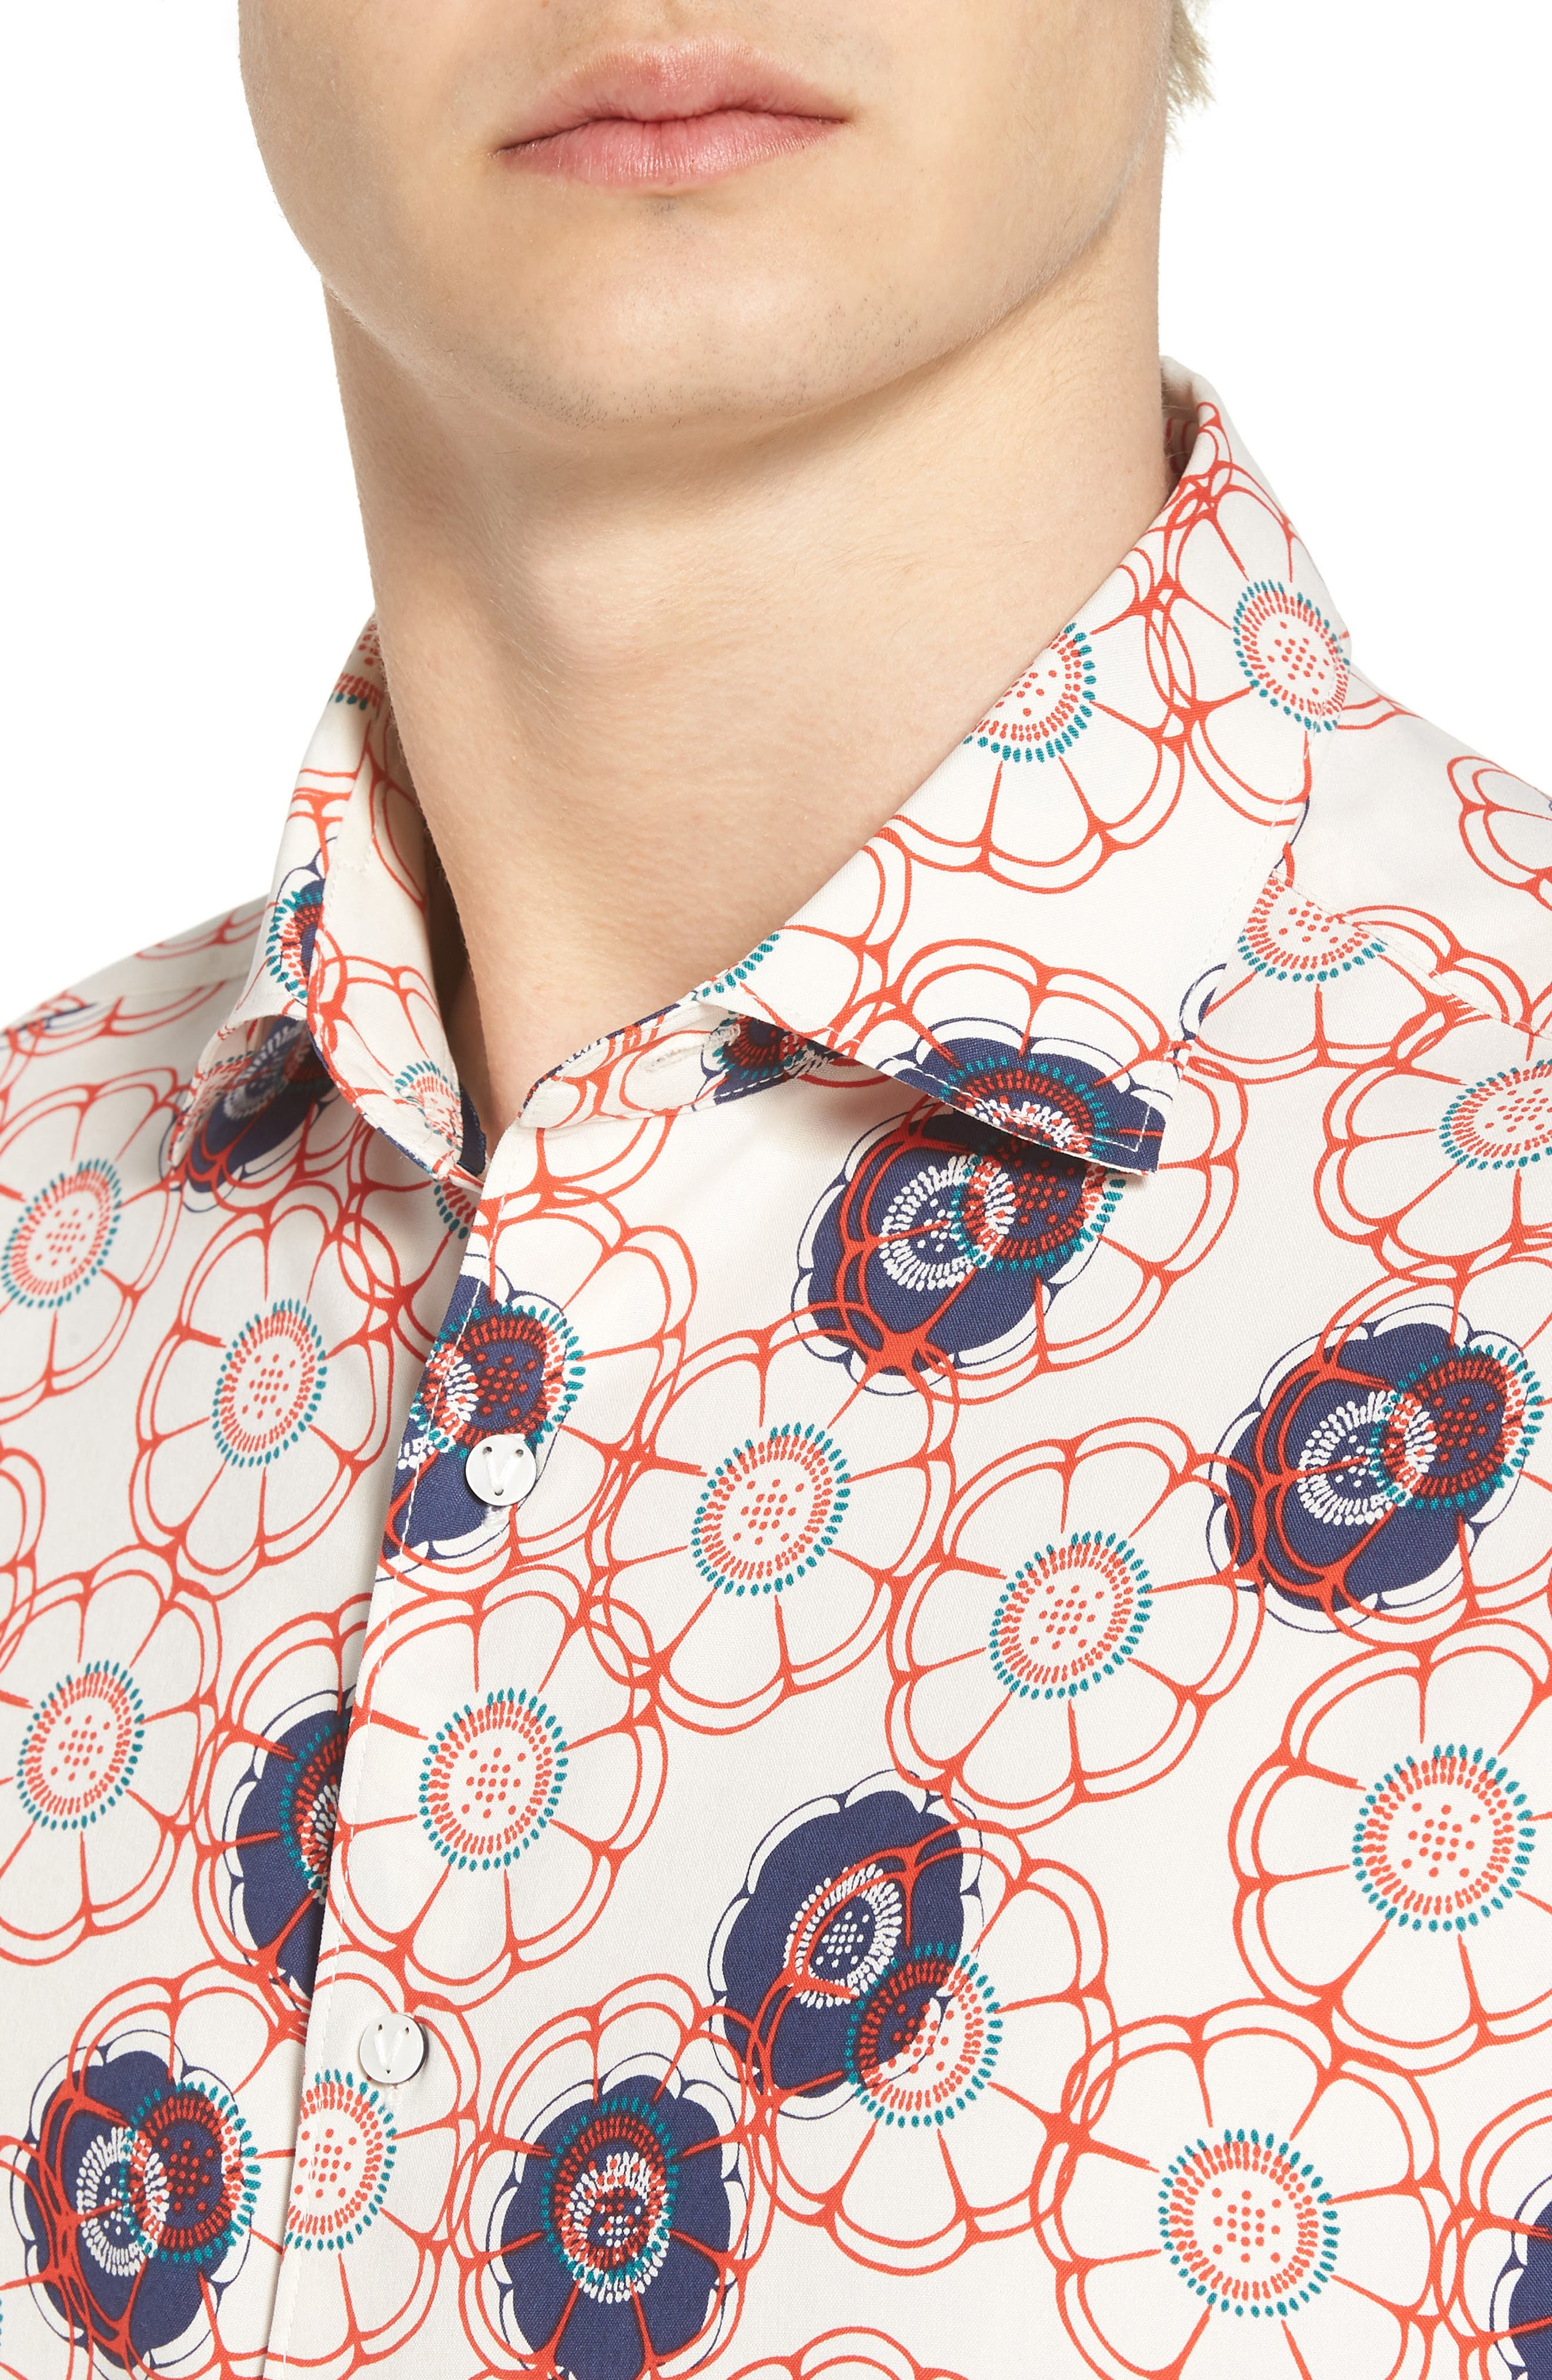 Tailor Fit Floral Print Silk Shirt,                             Alternate thumbnail 4, color,                             CANVAS/ RED CORAL